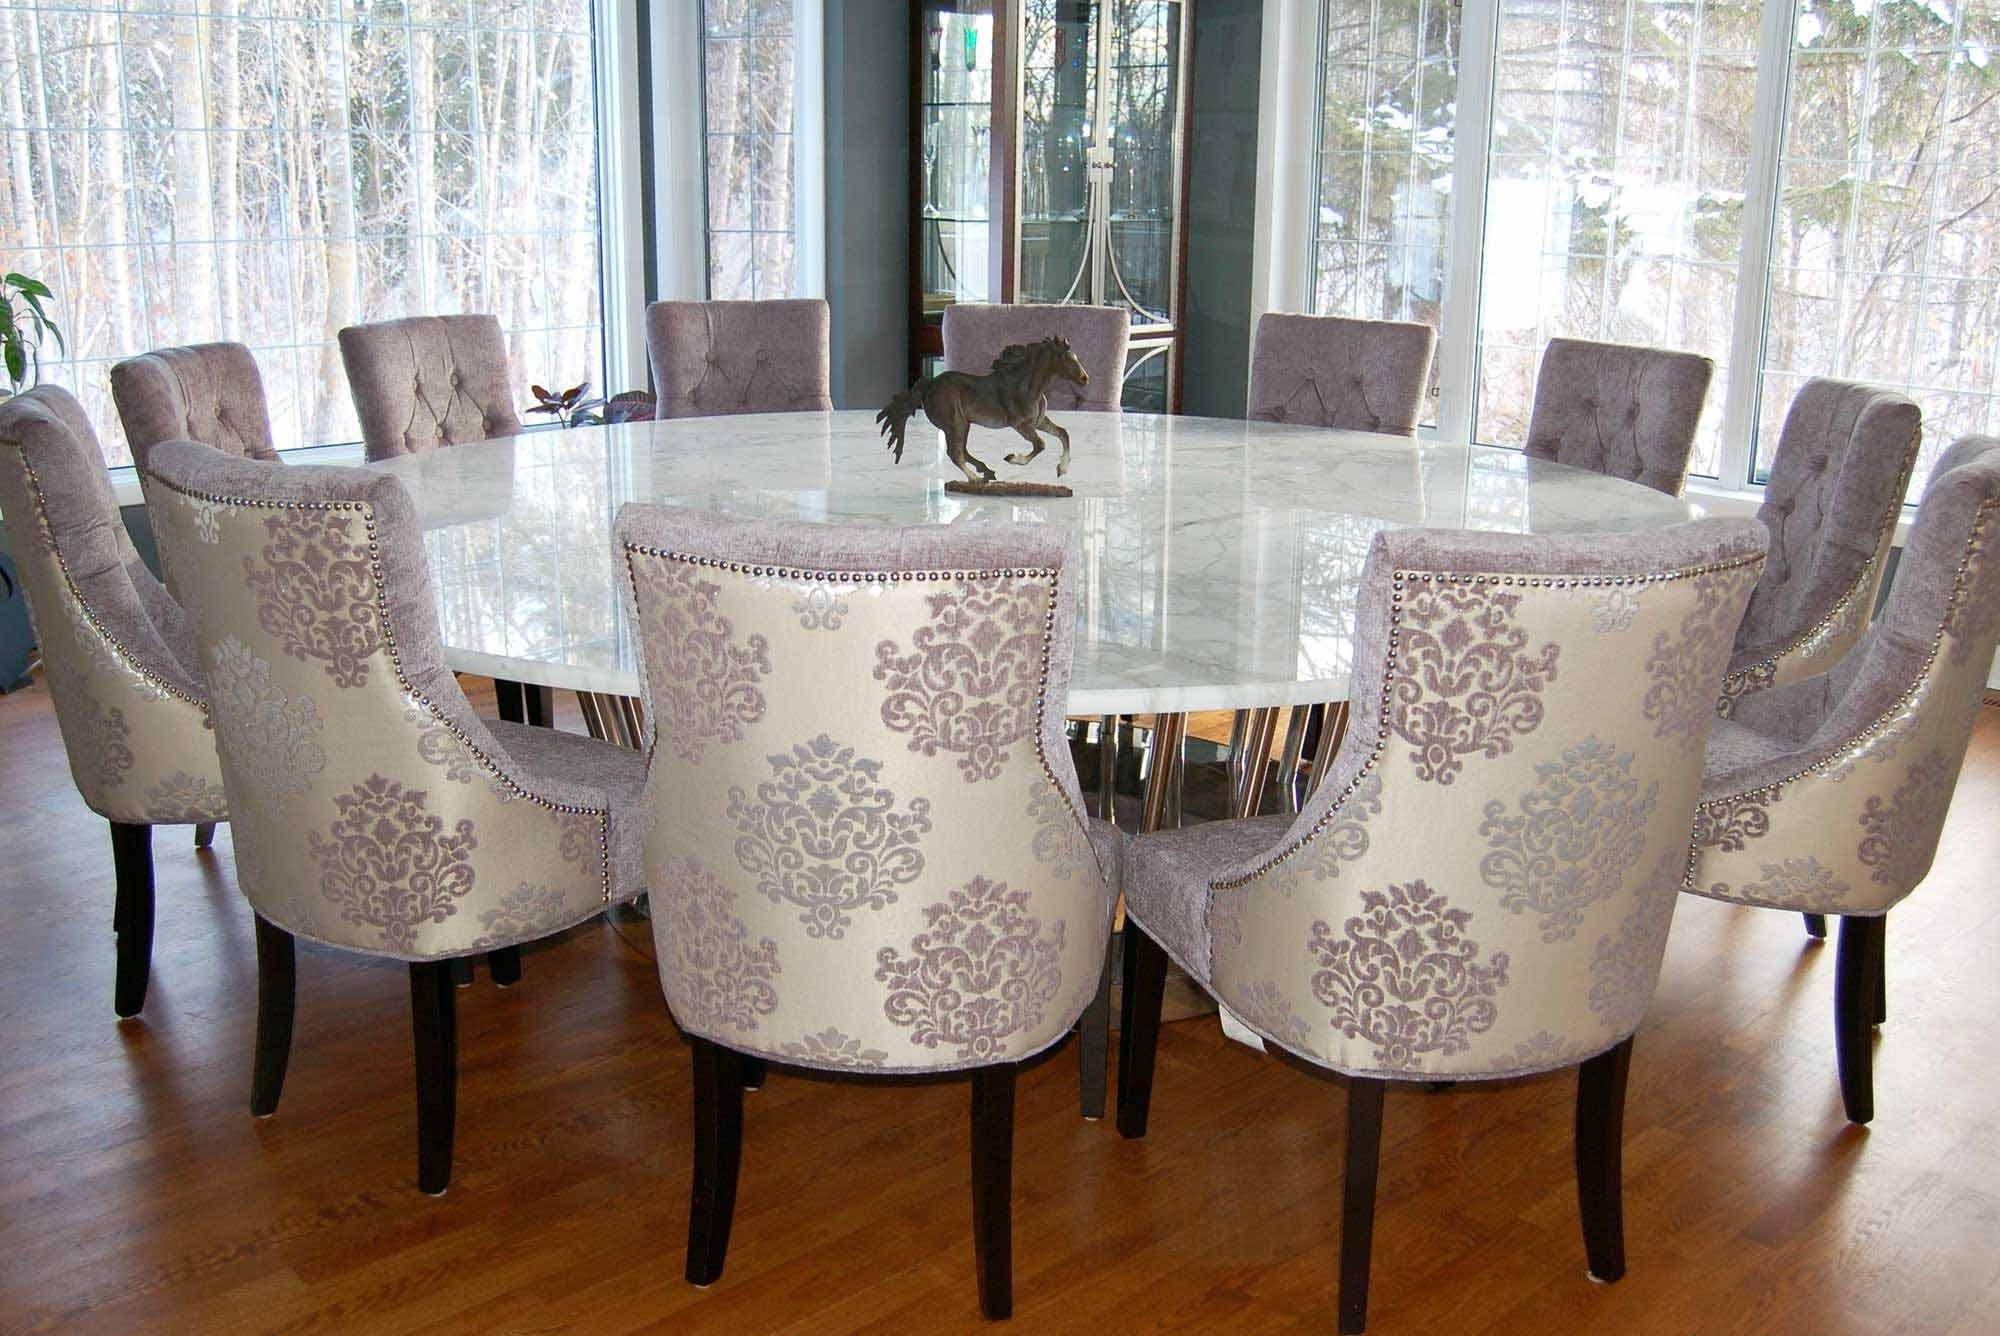 Dining Tables Marvellous Large Round Dining Table Seats 10 Round In Favorite Huge Round Dining Tables (Gallery 4 of 25)